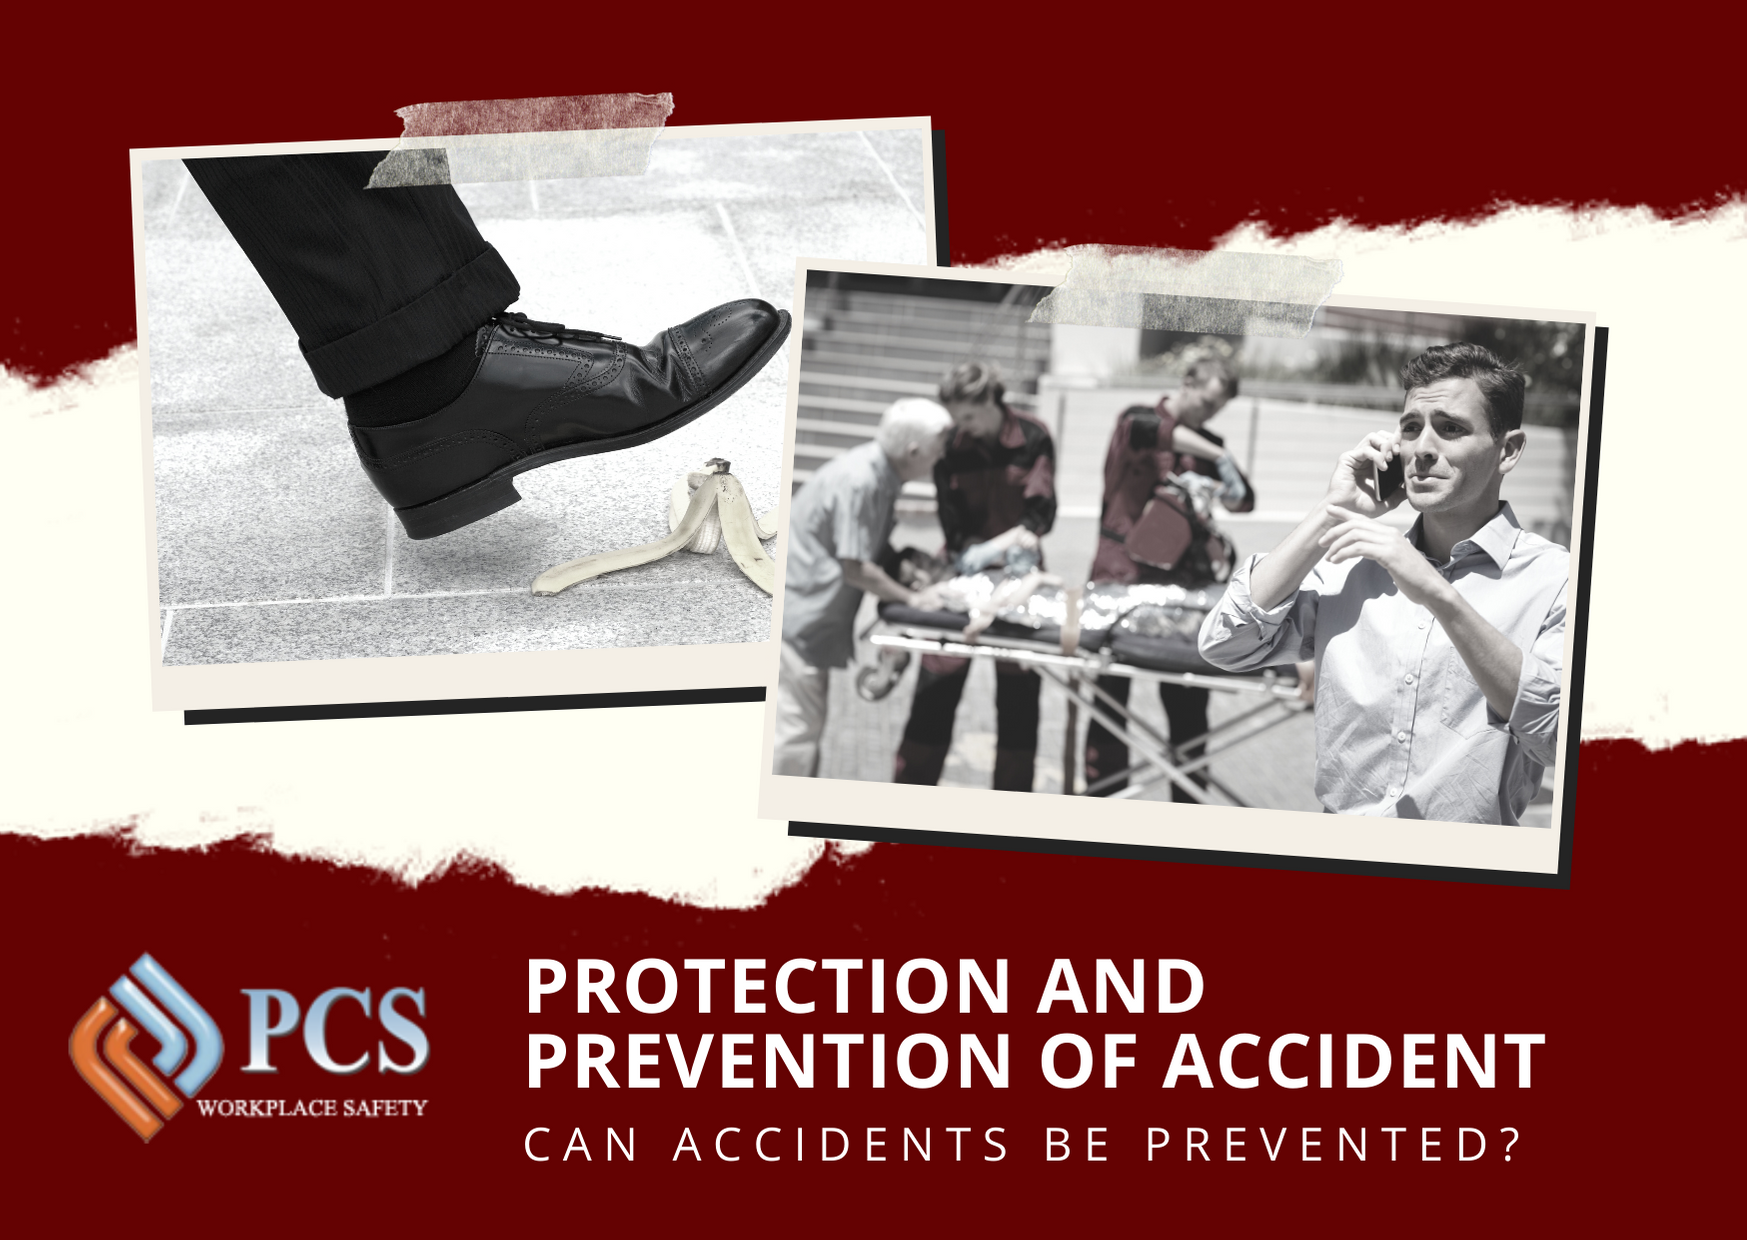 Beyond helping prevent accidents, you can rely on our